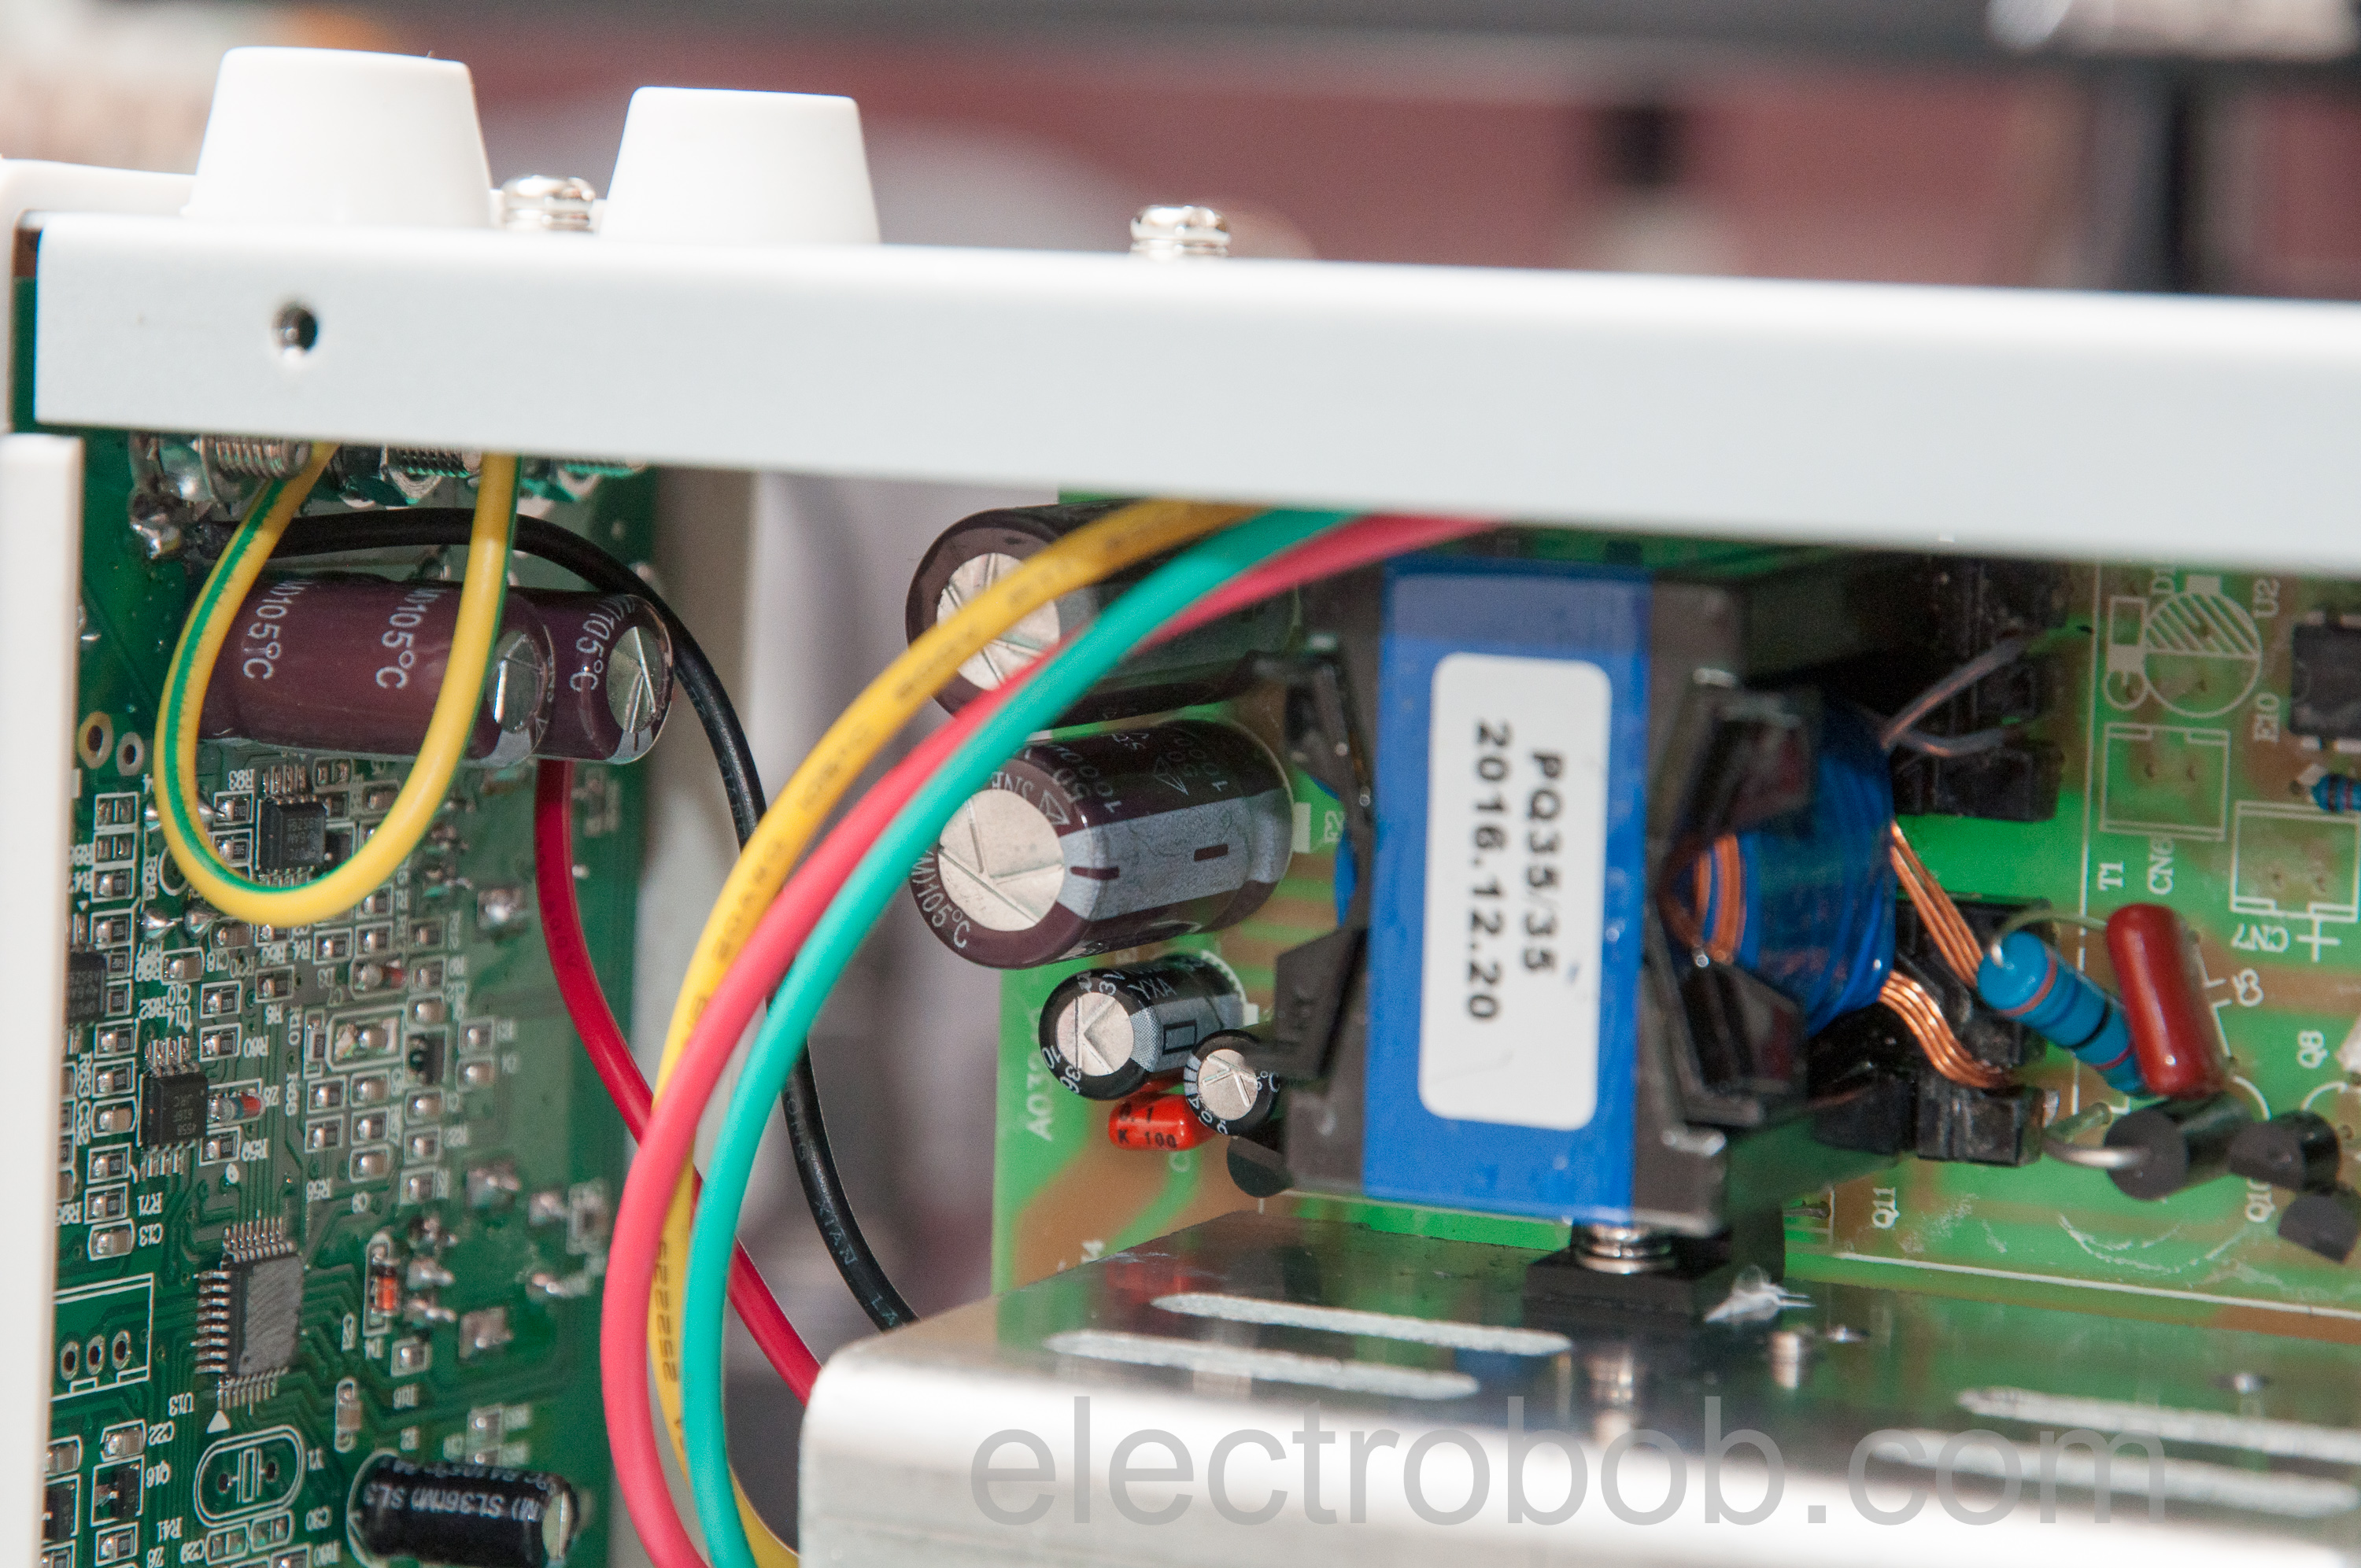 Peaktech 6225a Review Electro Bob Electronic Lamp Switch Including Time Delay Option Eeweb Community Looking At The Board From Behind We Can See Some Clear Demarcation Of High And Low Voltage Regions Which Appear To Be Safely Separated